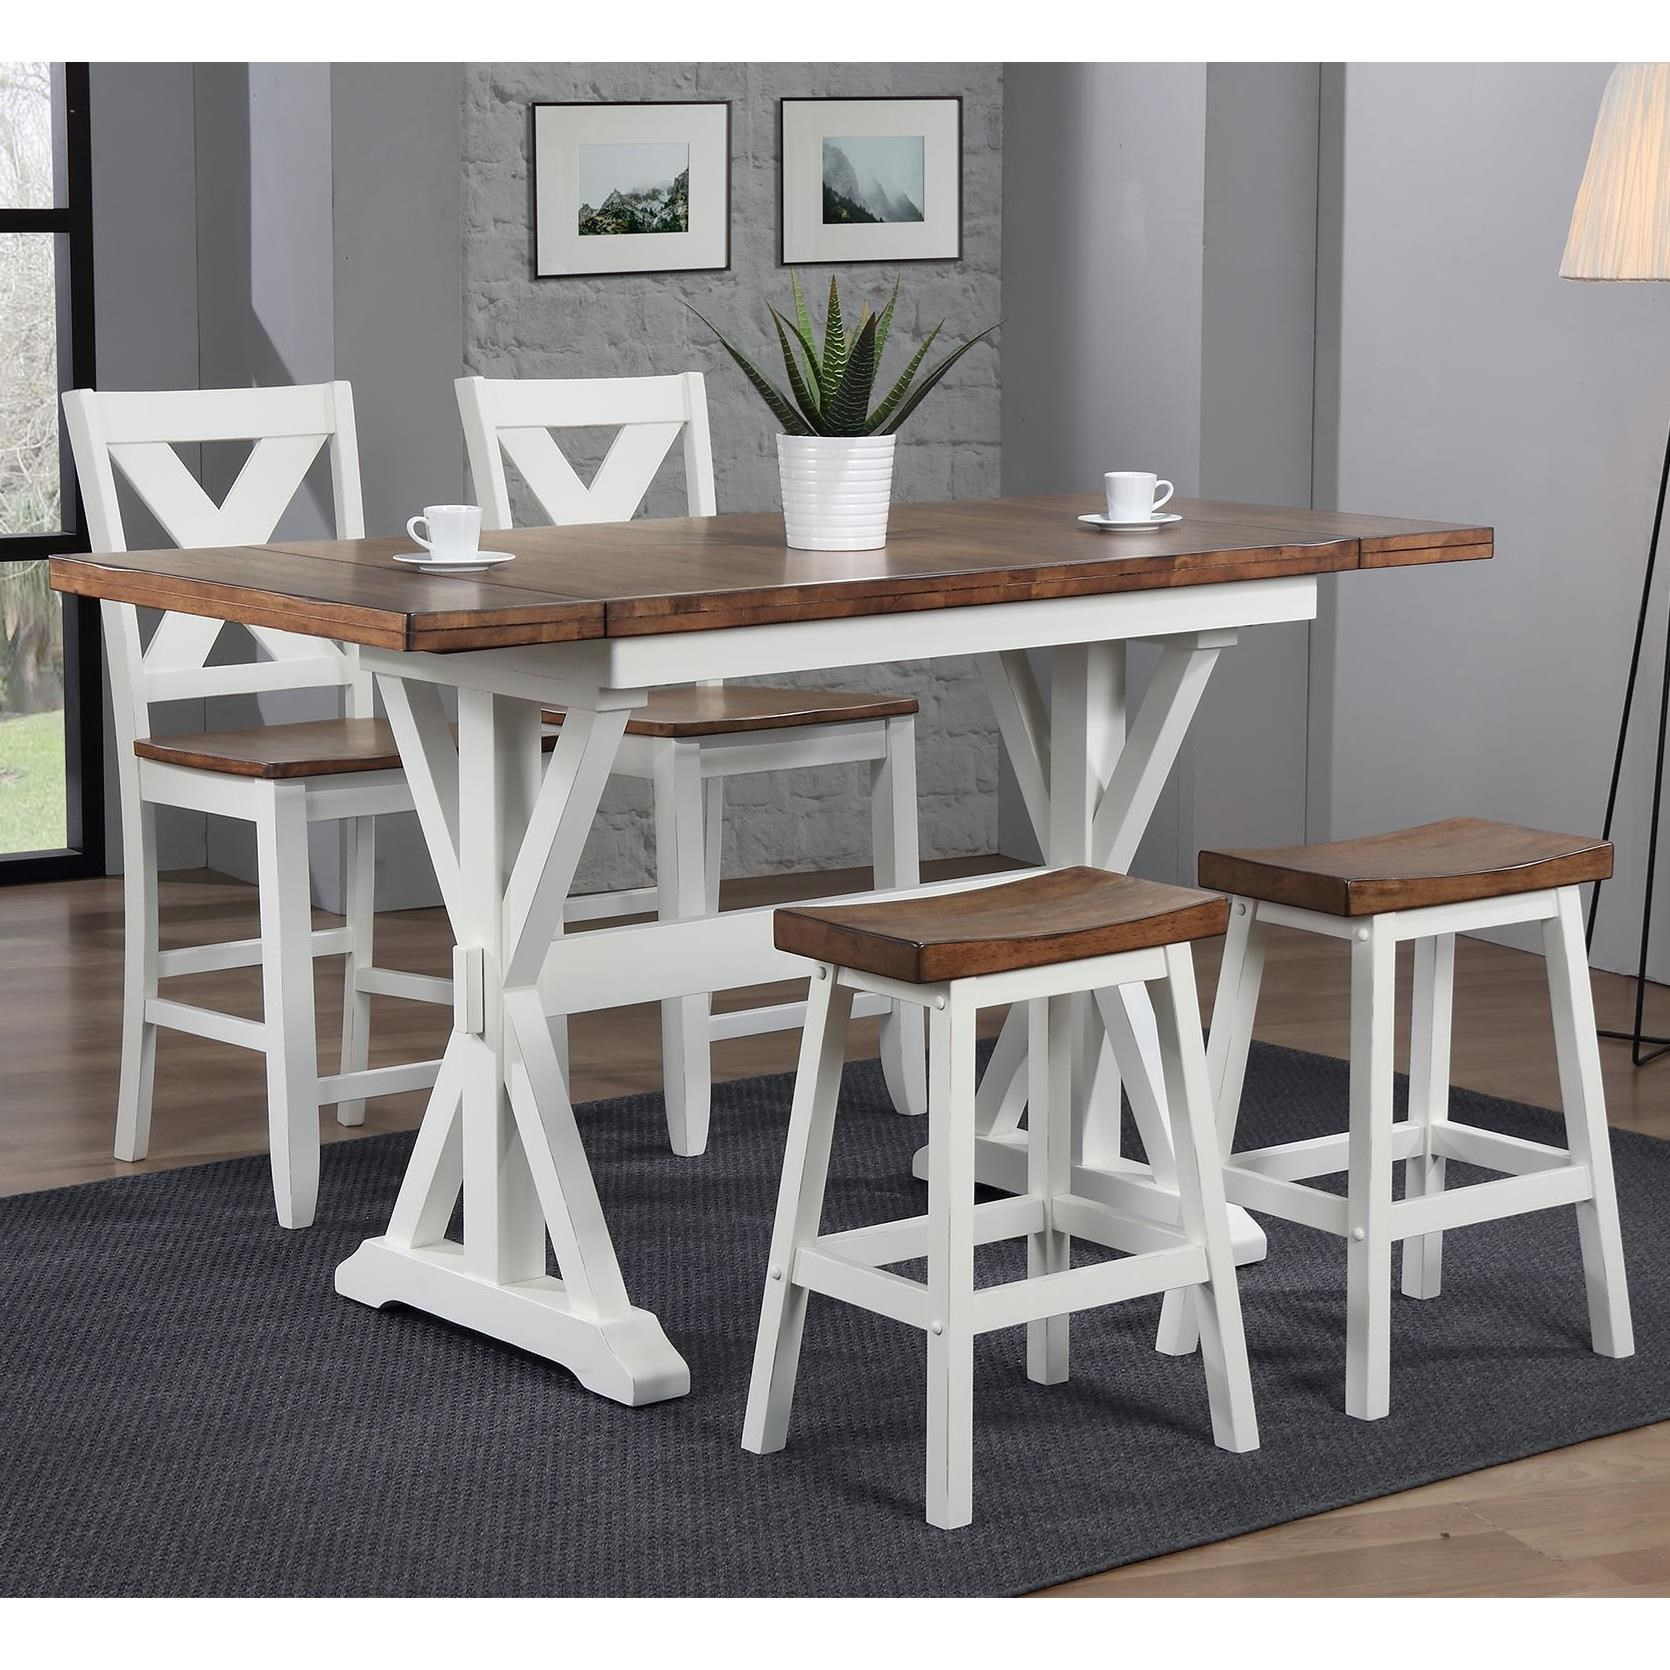 Where Is Winners Only Furniture Made: Winners Only Pacifica Counter Height Dining Set With Miss